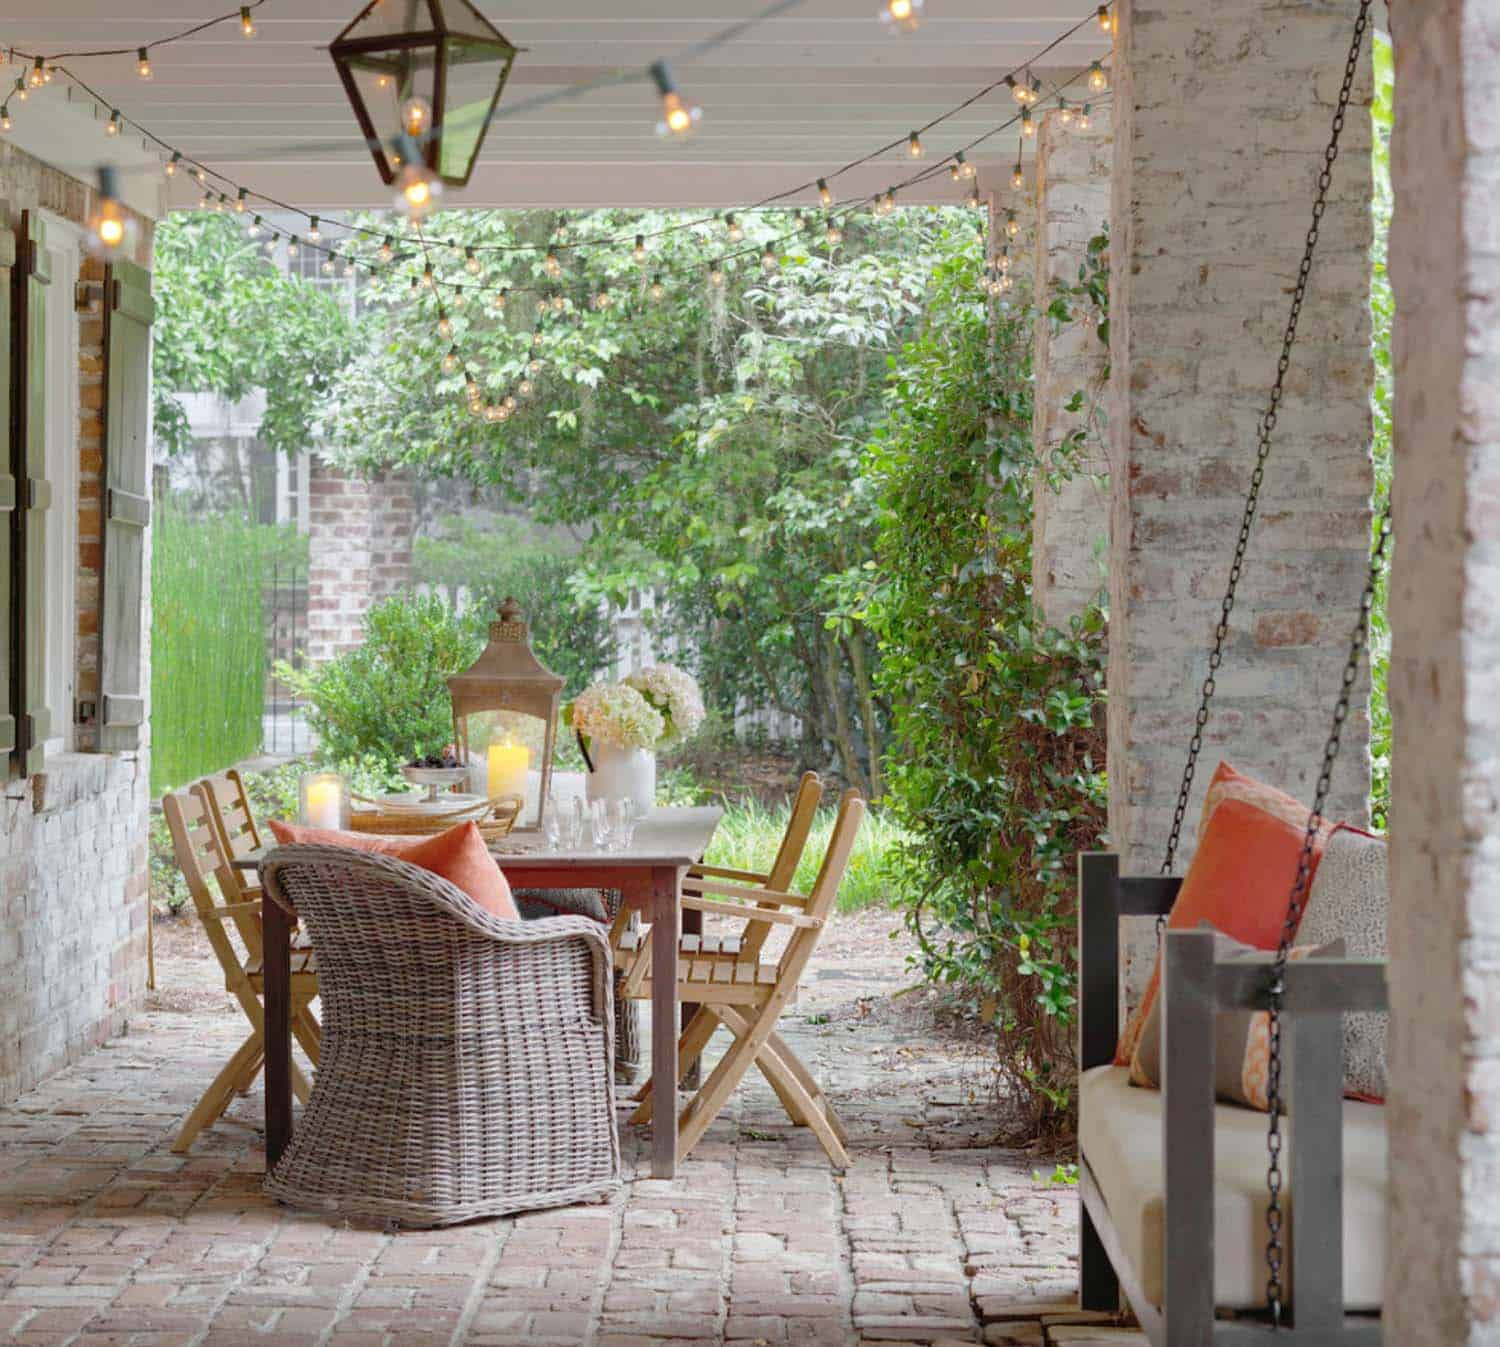 Inspiring String Light Ideas For Outdoors-13-1 Kindesign